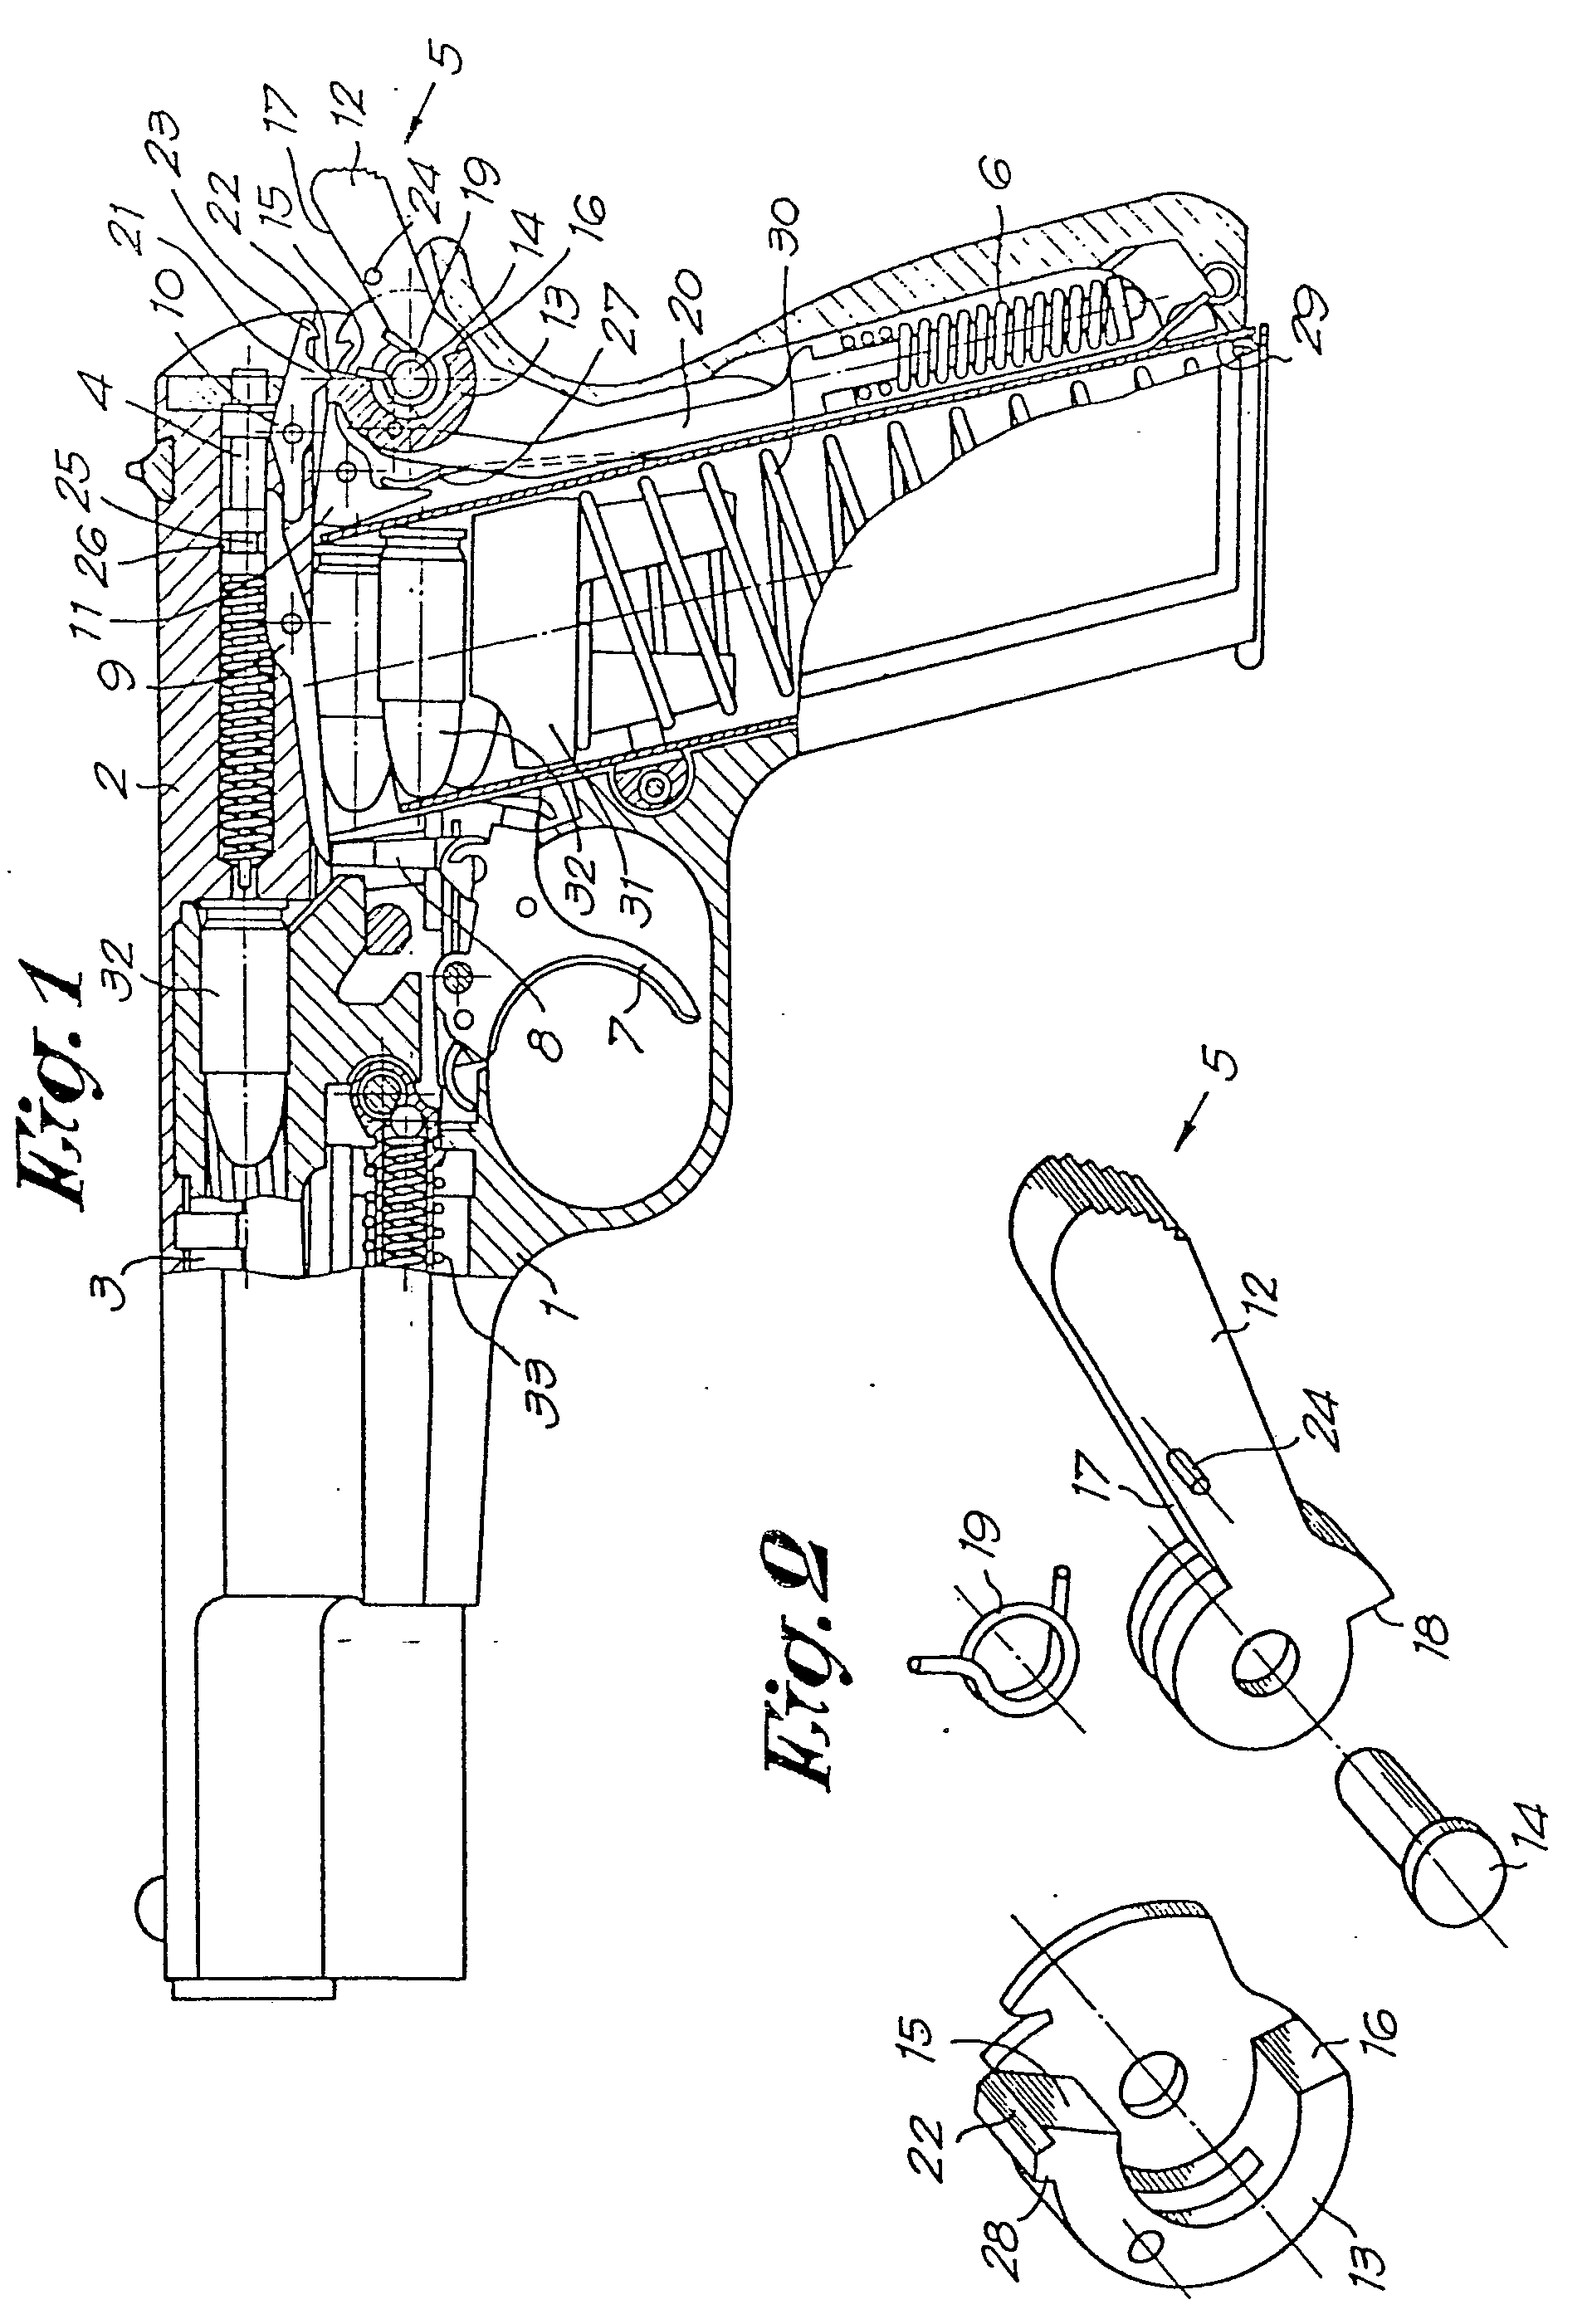 Pin On Patent Drawings